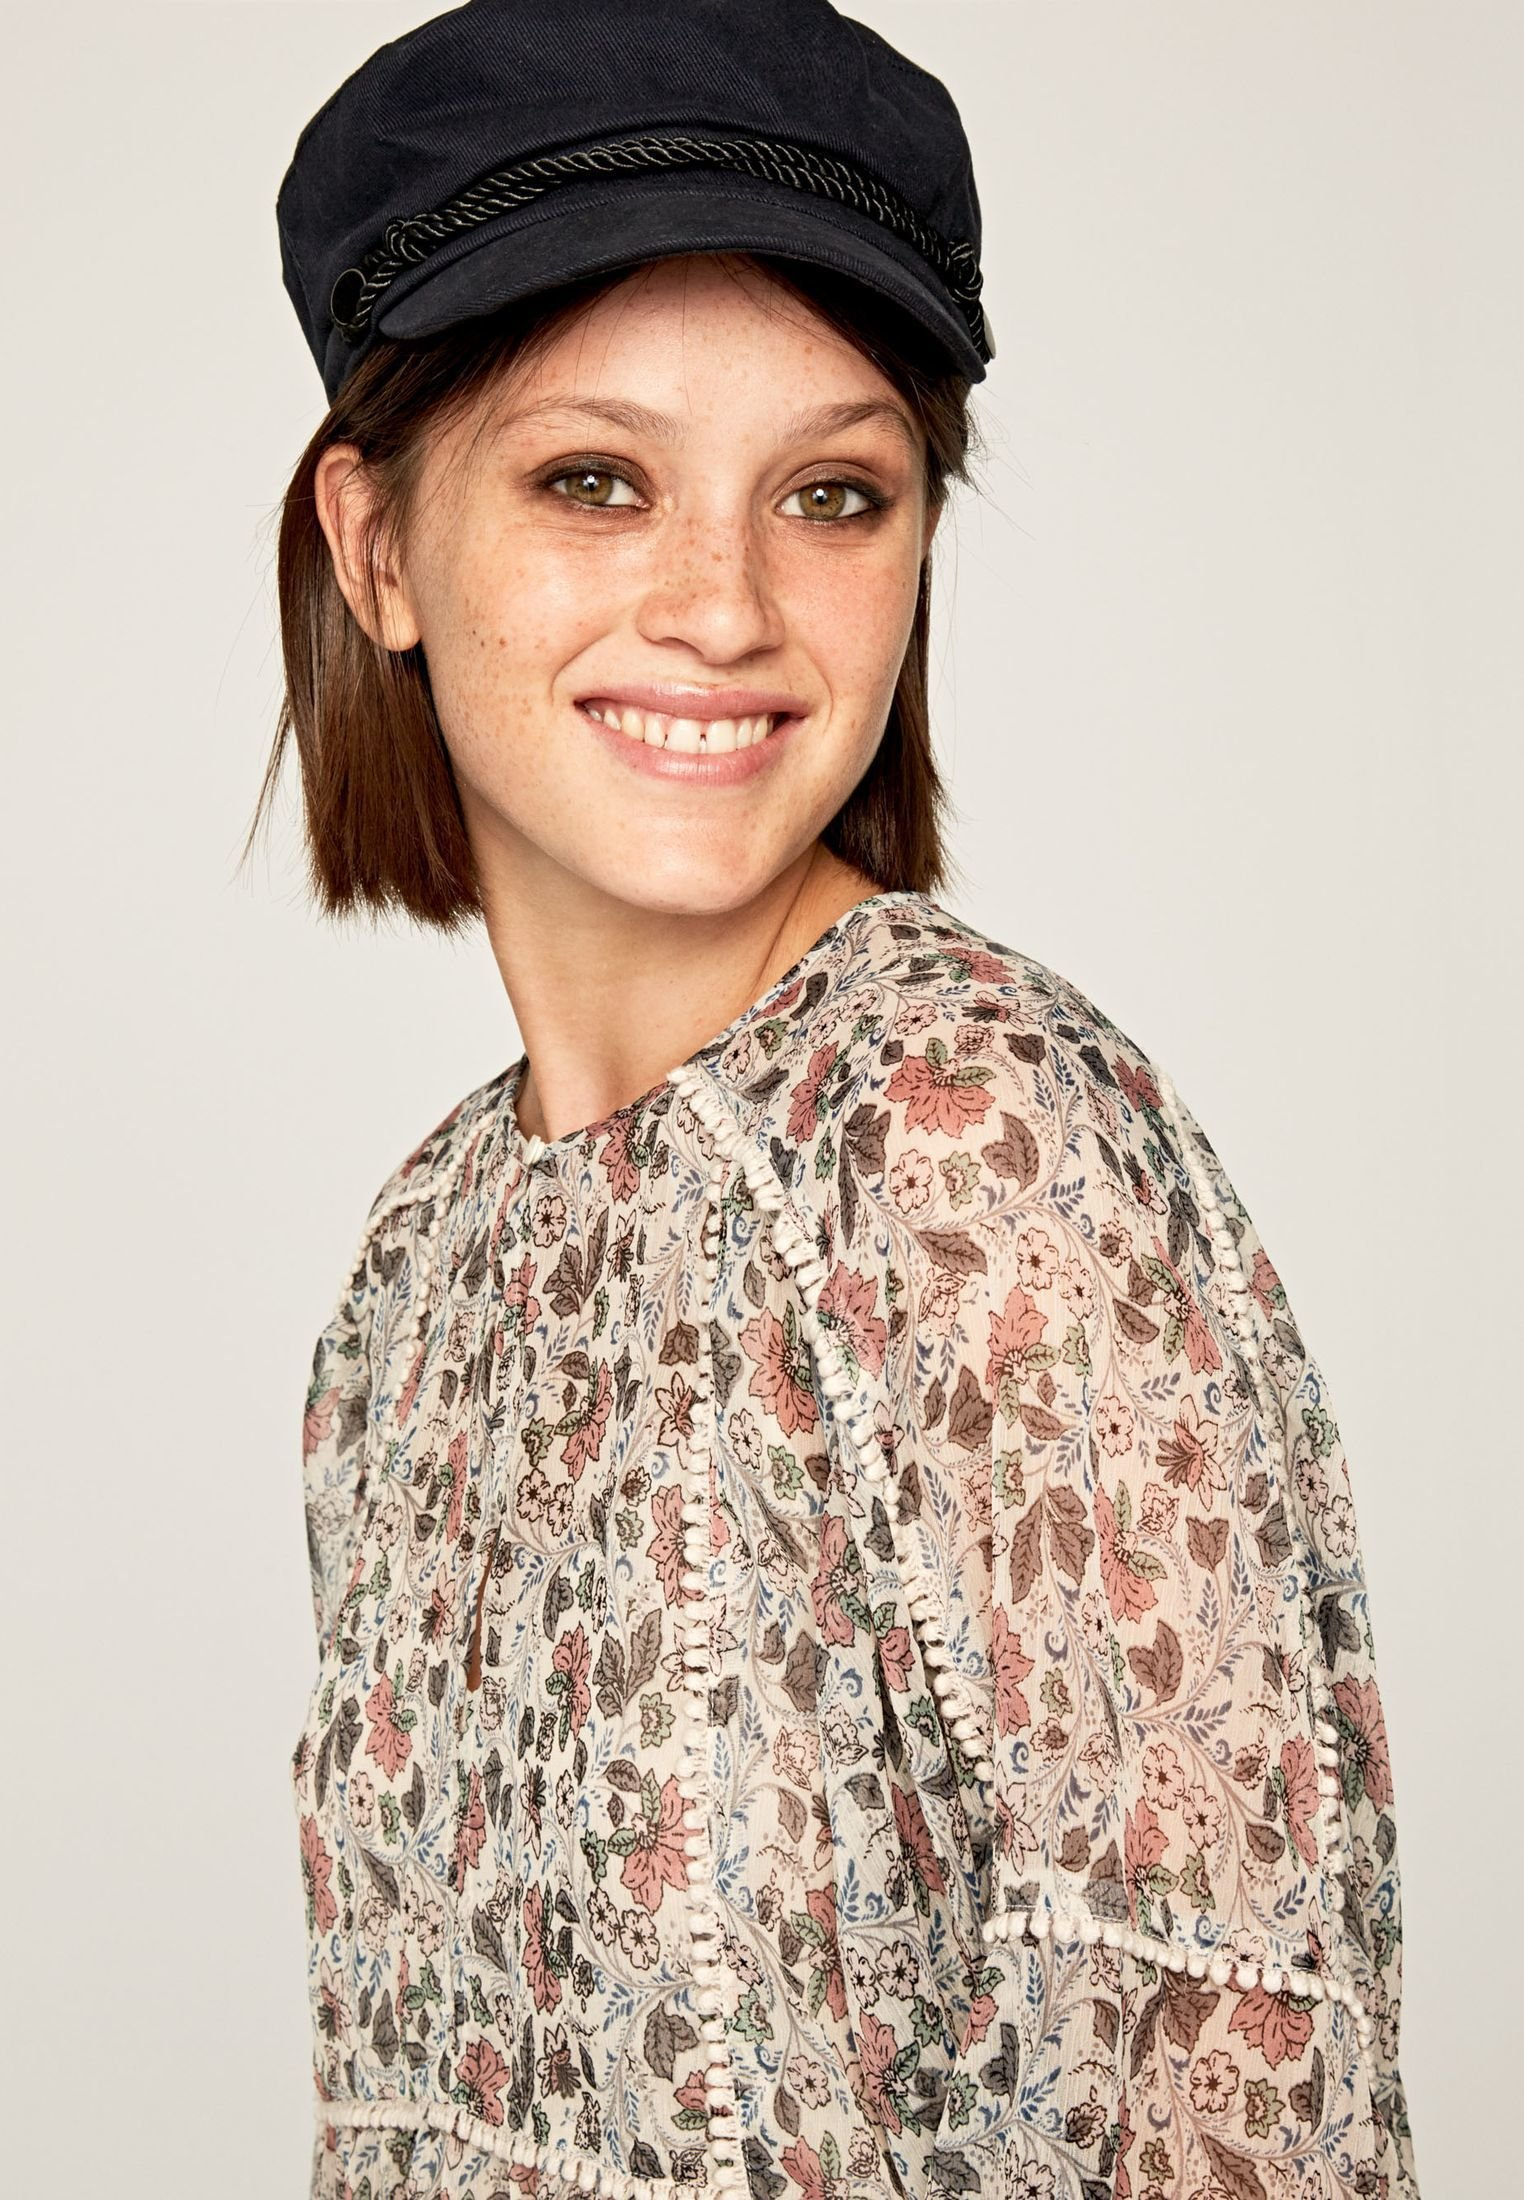 Pepe Jeans Loren - Blouse Multi-coloured